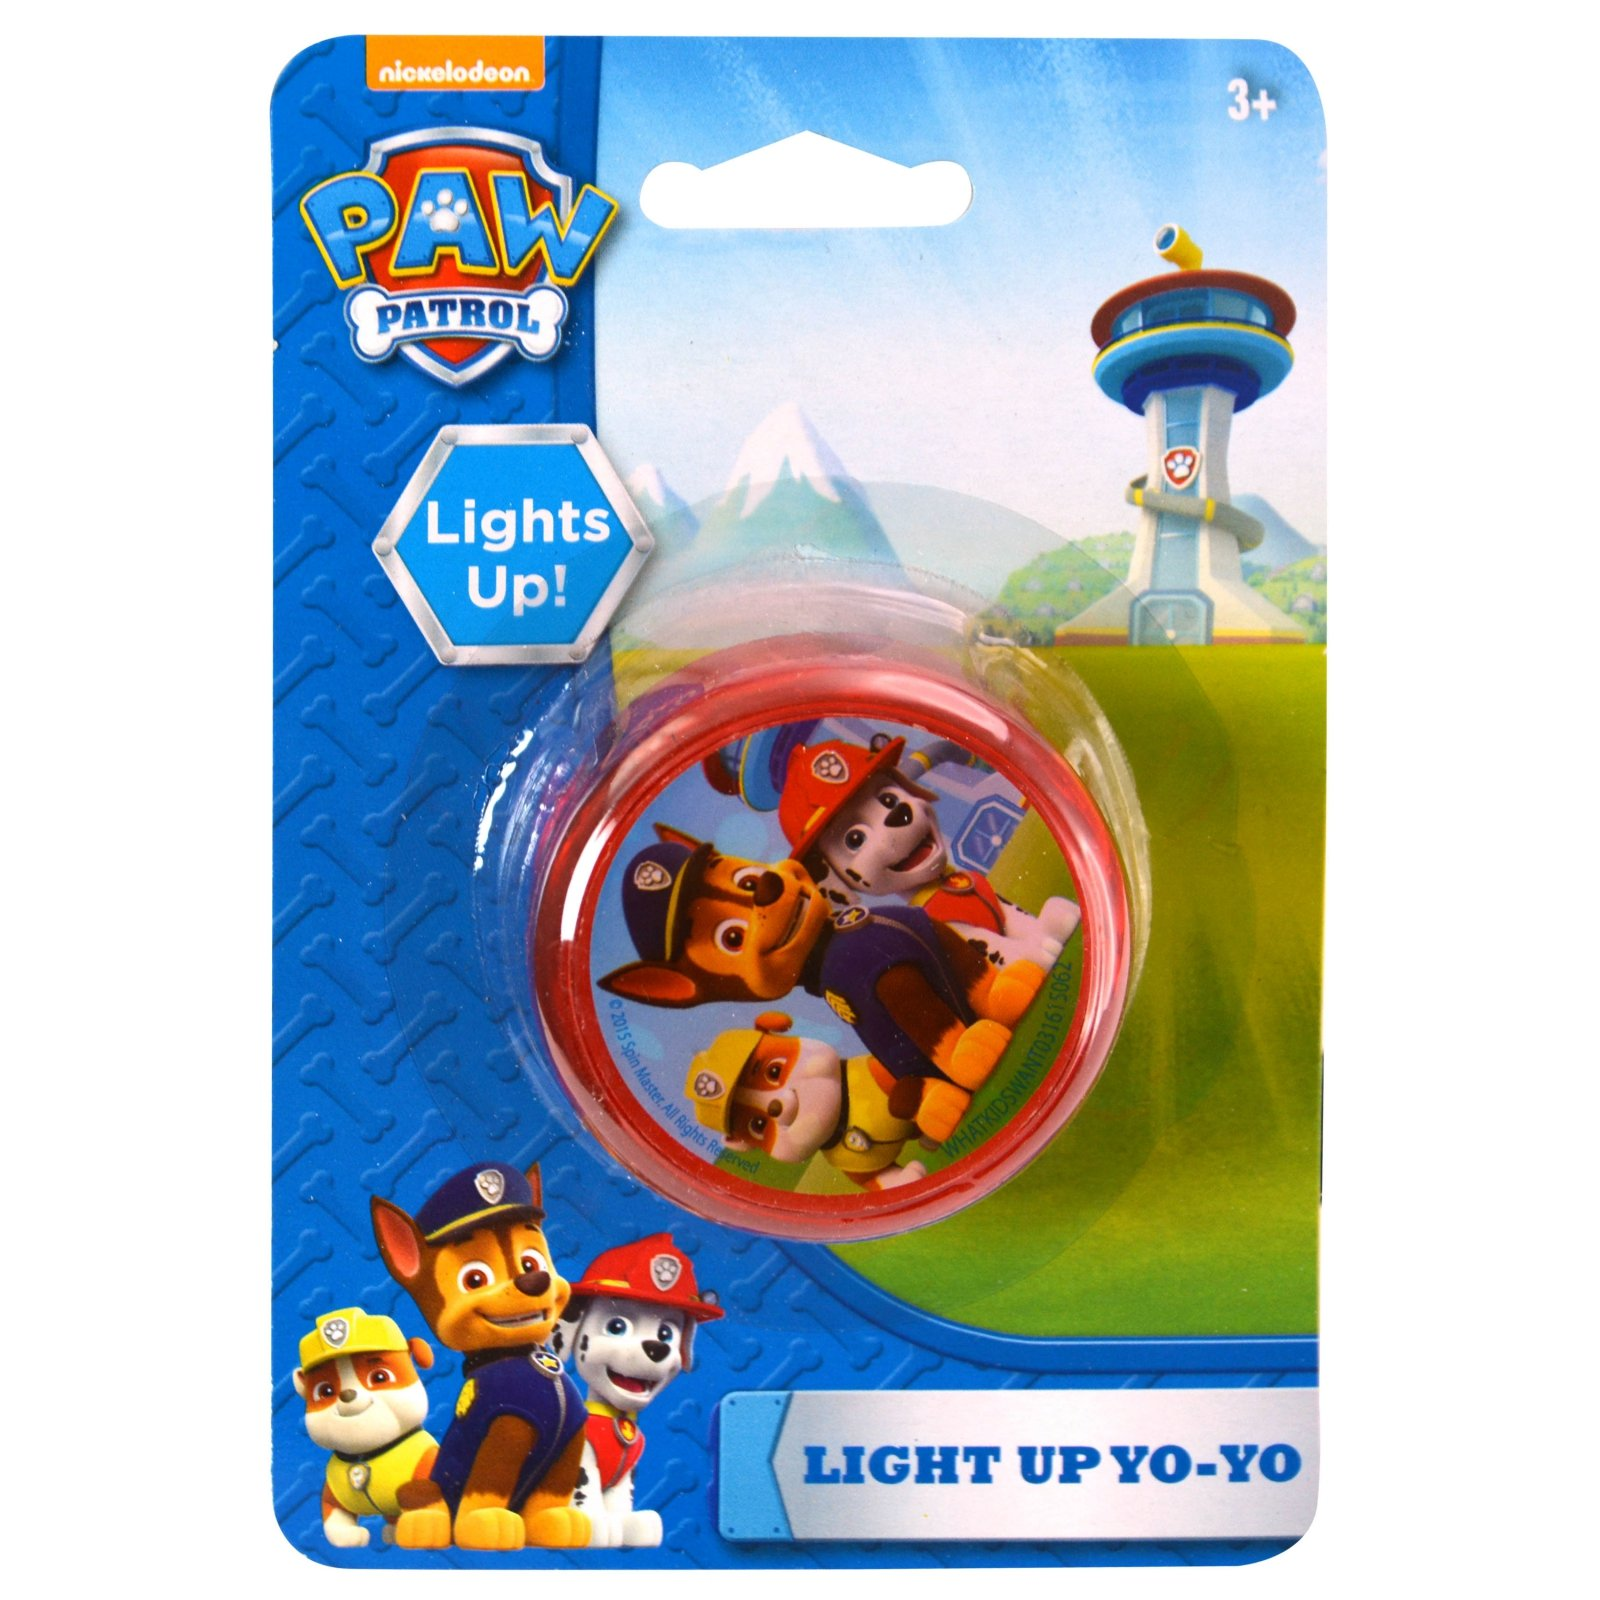 Light Up Red Paw Patrol Light Up Yo-Yo